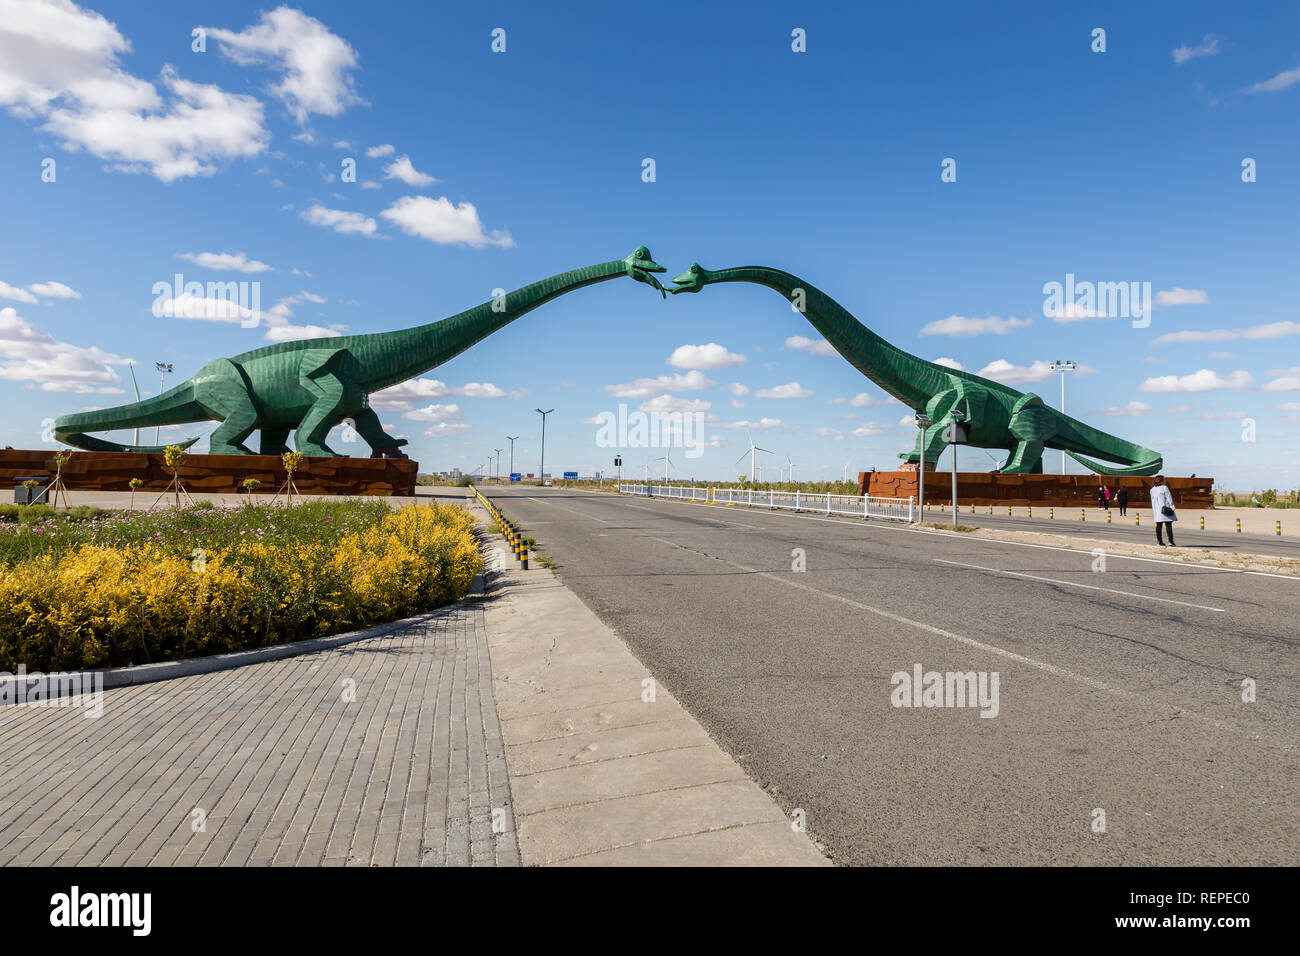 Erenhot, Inner Mongolia, China - September 23, 2018: Two green kissing dinosaurs. Statues of two dinosaurs, located on both sides of the road. - Stock Image